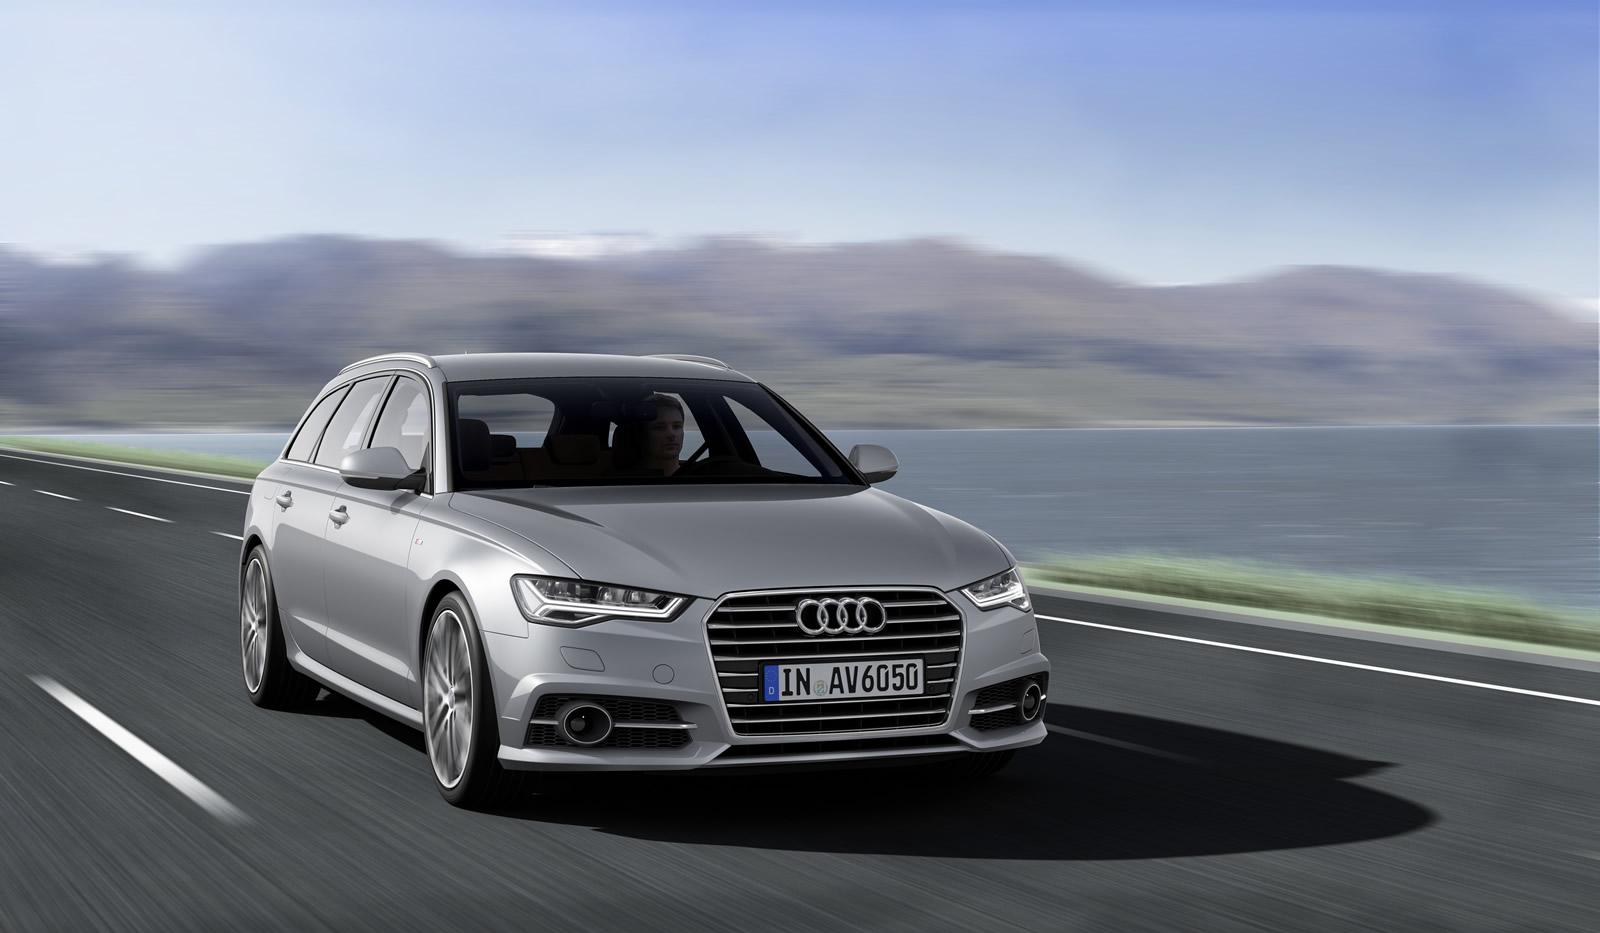 2015 audi a6 facelift makes video debut in avant ultra form autoevolution. Black Bedroom Furniture Sets. Home Design Ideas